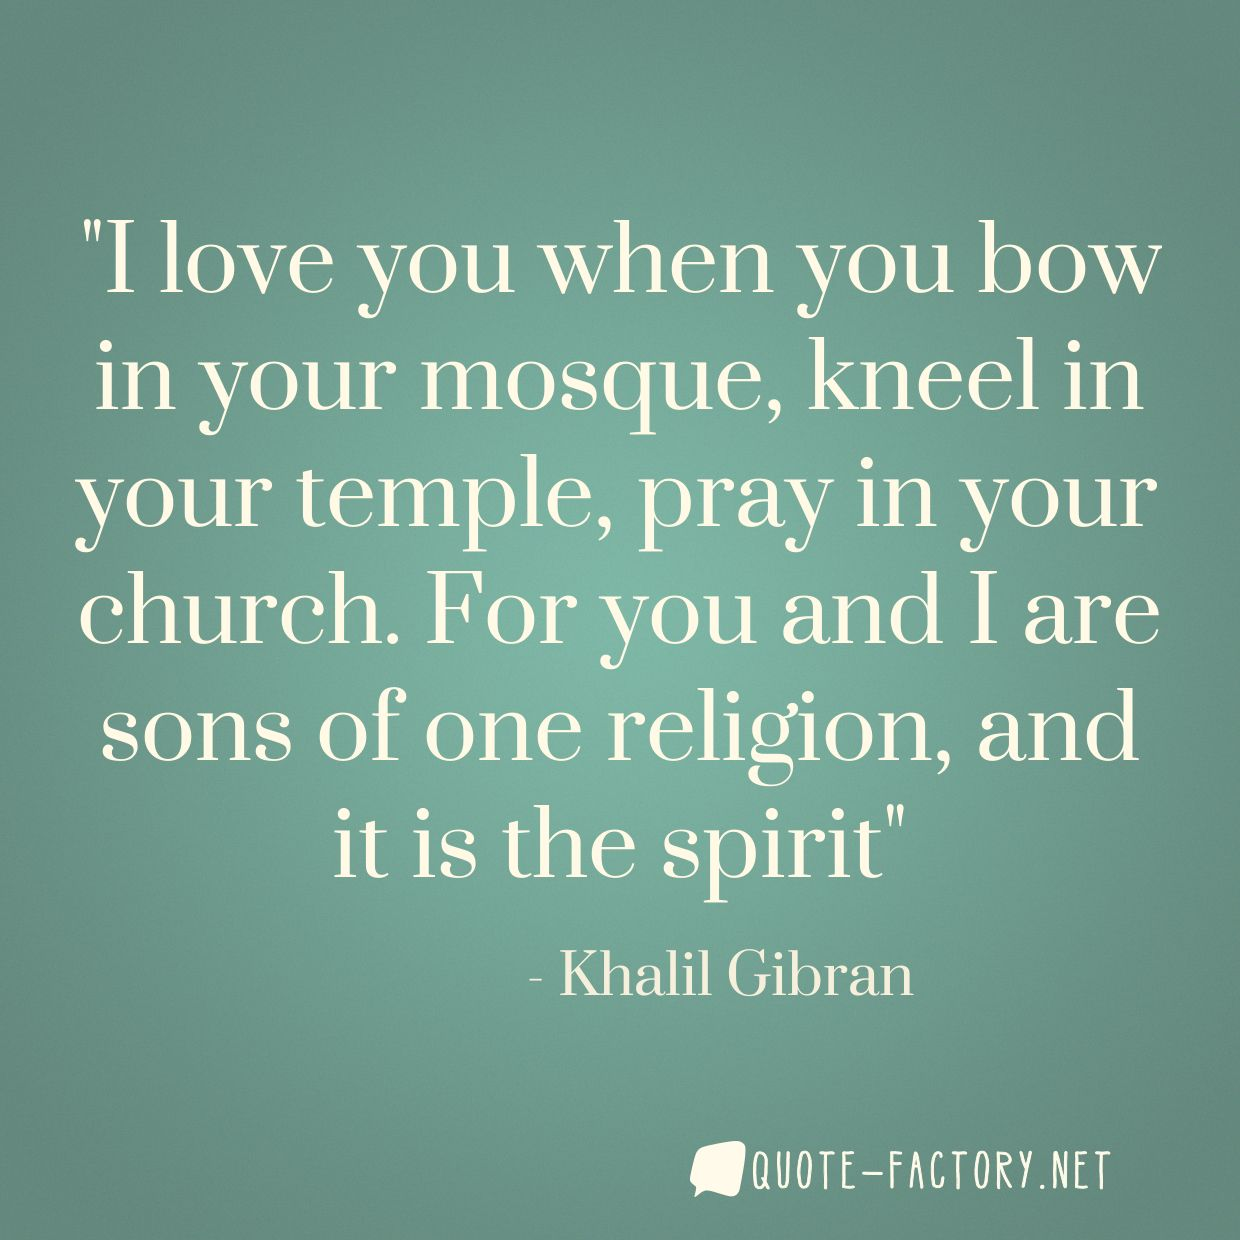 I love you when you bow in your mosque, kneel in your temple, pray in your church. For you and I are sons of one religion, and it is the spirit